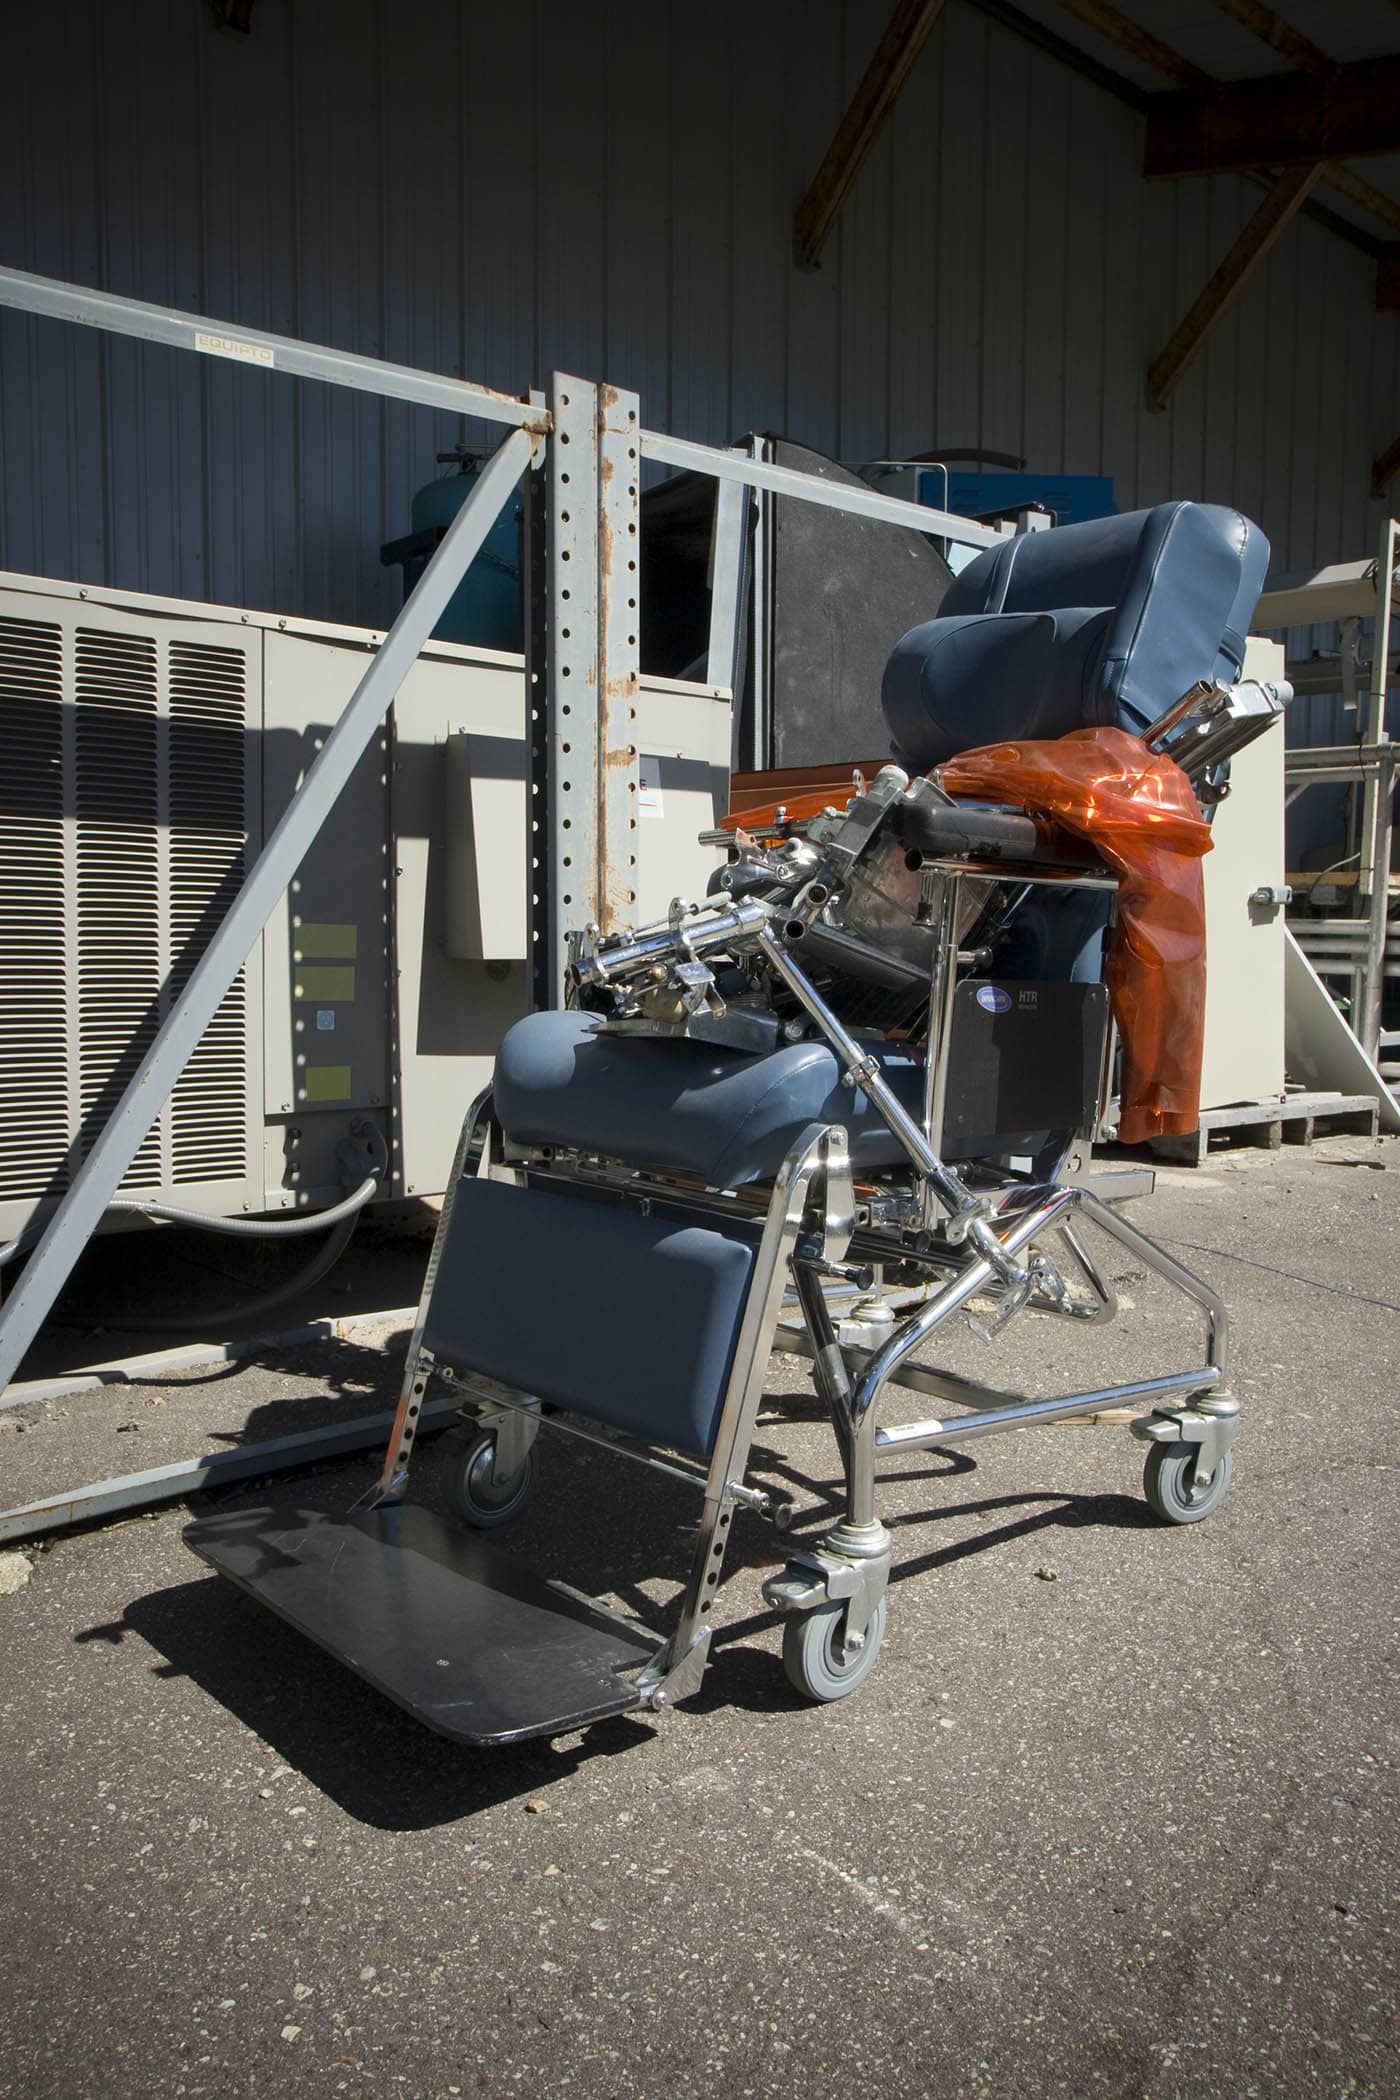 Old dentist chair. The world's largest scrap metal sculpture, Dr. Evermor's Forevertron at Delaney's Surplus Sales in Sumpter, Wisconsin, is meant for intergalactic travel. Visit this weird roadside attraction on a Wisconsin road trip.